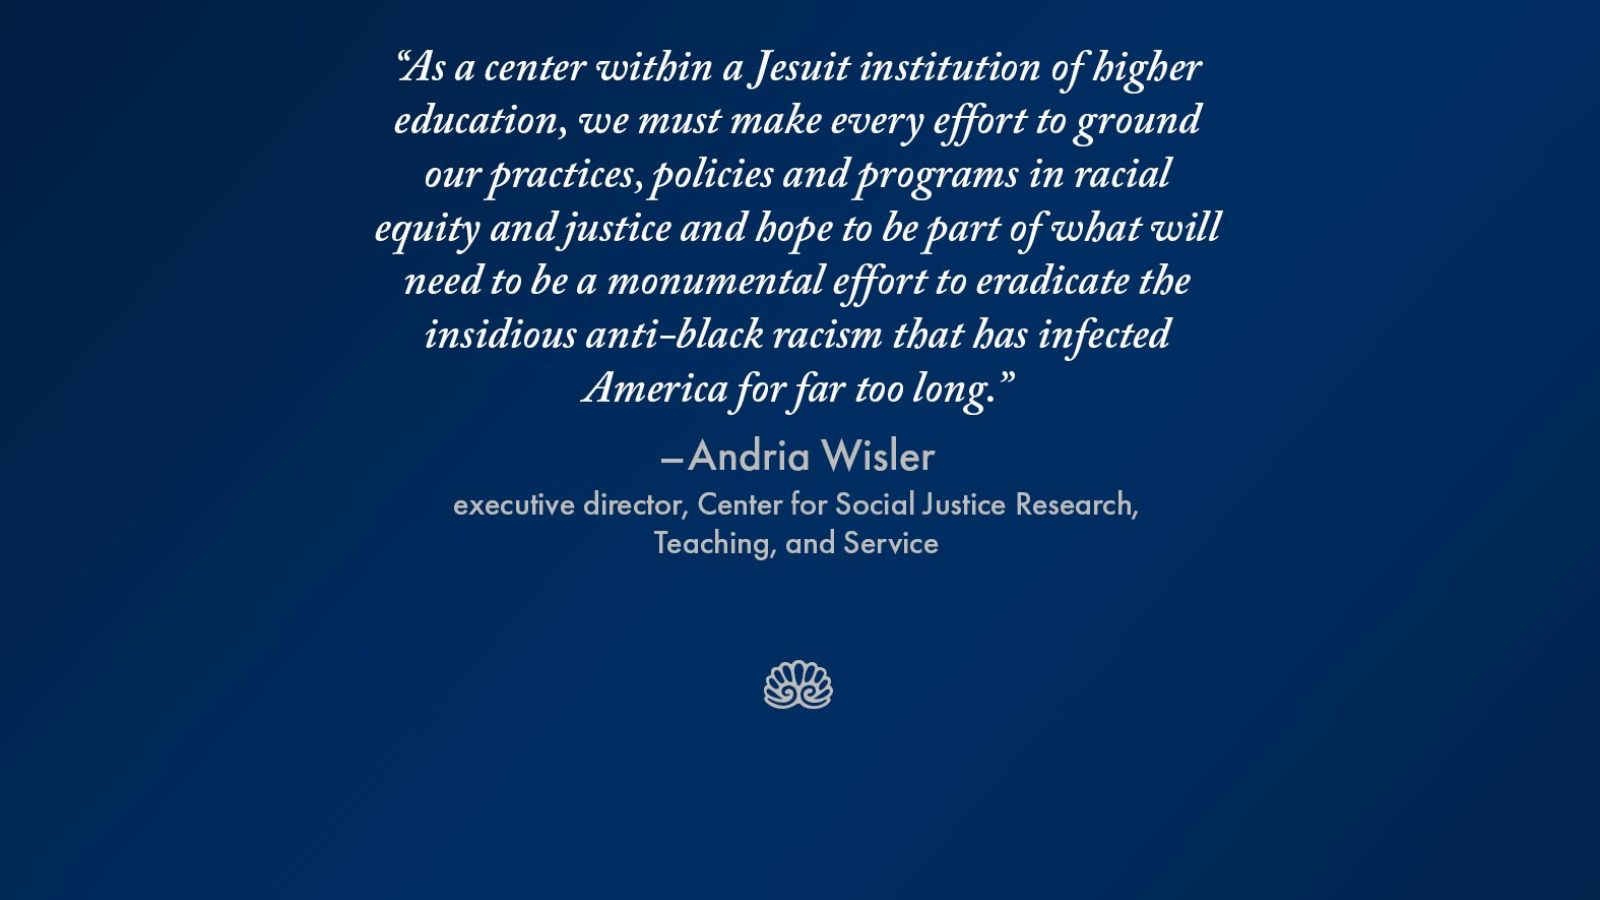 "Graphic with the words ""As a center within a Jesuit institution of higher education, we must make every effort to ground our practices, policies and programs in racial equity and justice and hope to be part of what will need to be a monumental effort to eradicate the insidious anti-black racism that has infected America for far too long."" - Andria Wisler, executive director, Center for Social Justice, Research, Teaching, and Service"